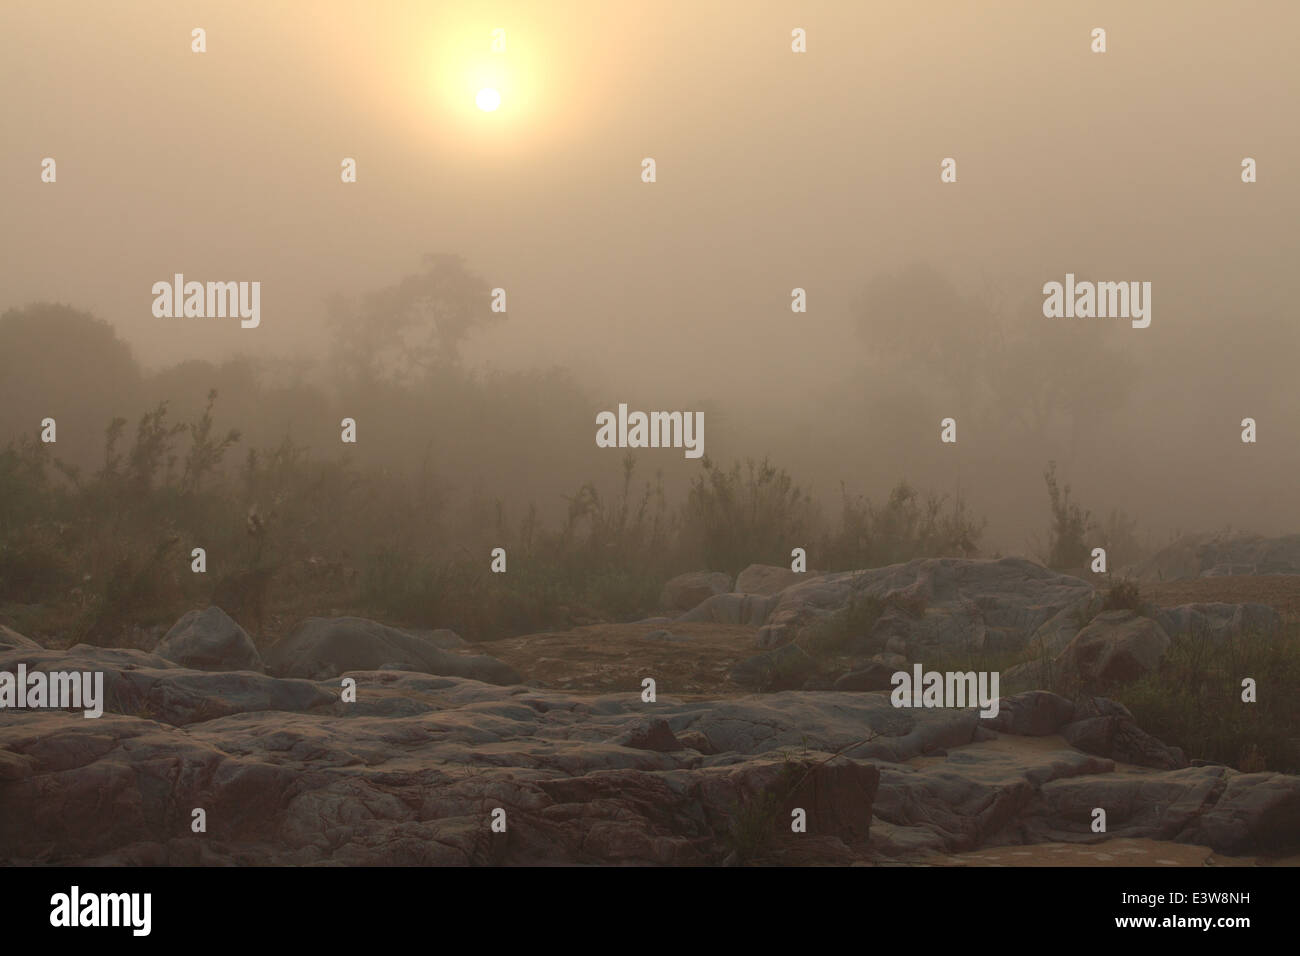 A misty dawn over a river in the Kruger National Park. - Stock Image